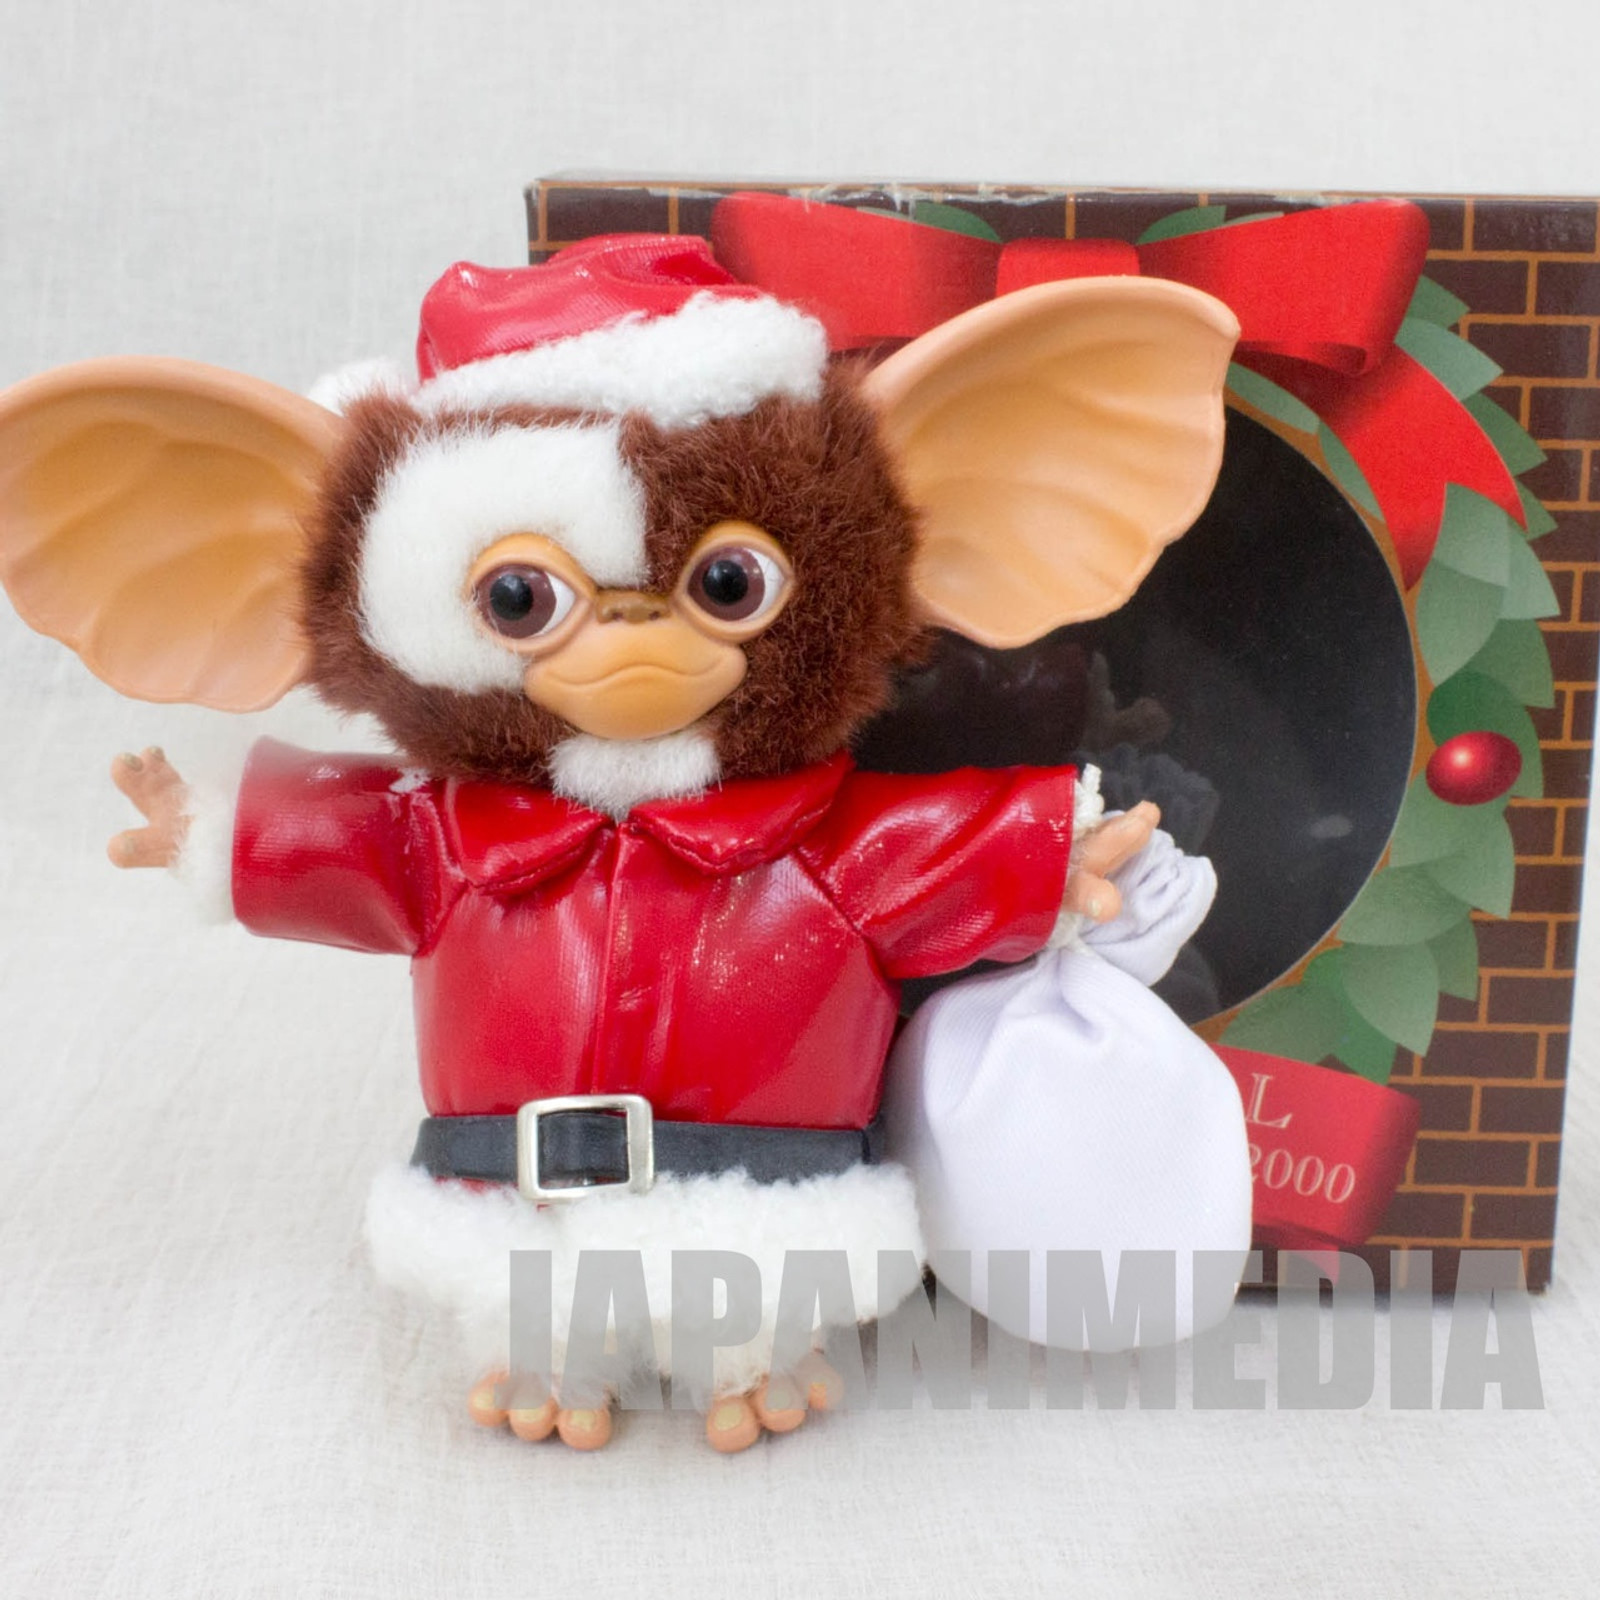 [JUNK ITEM/Damaged] Gremlins GIZMO Bendable Petit Doll Figure Santa Chirstmas